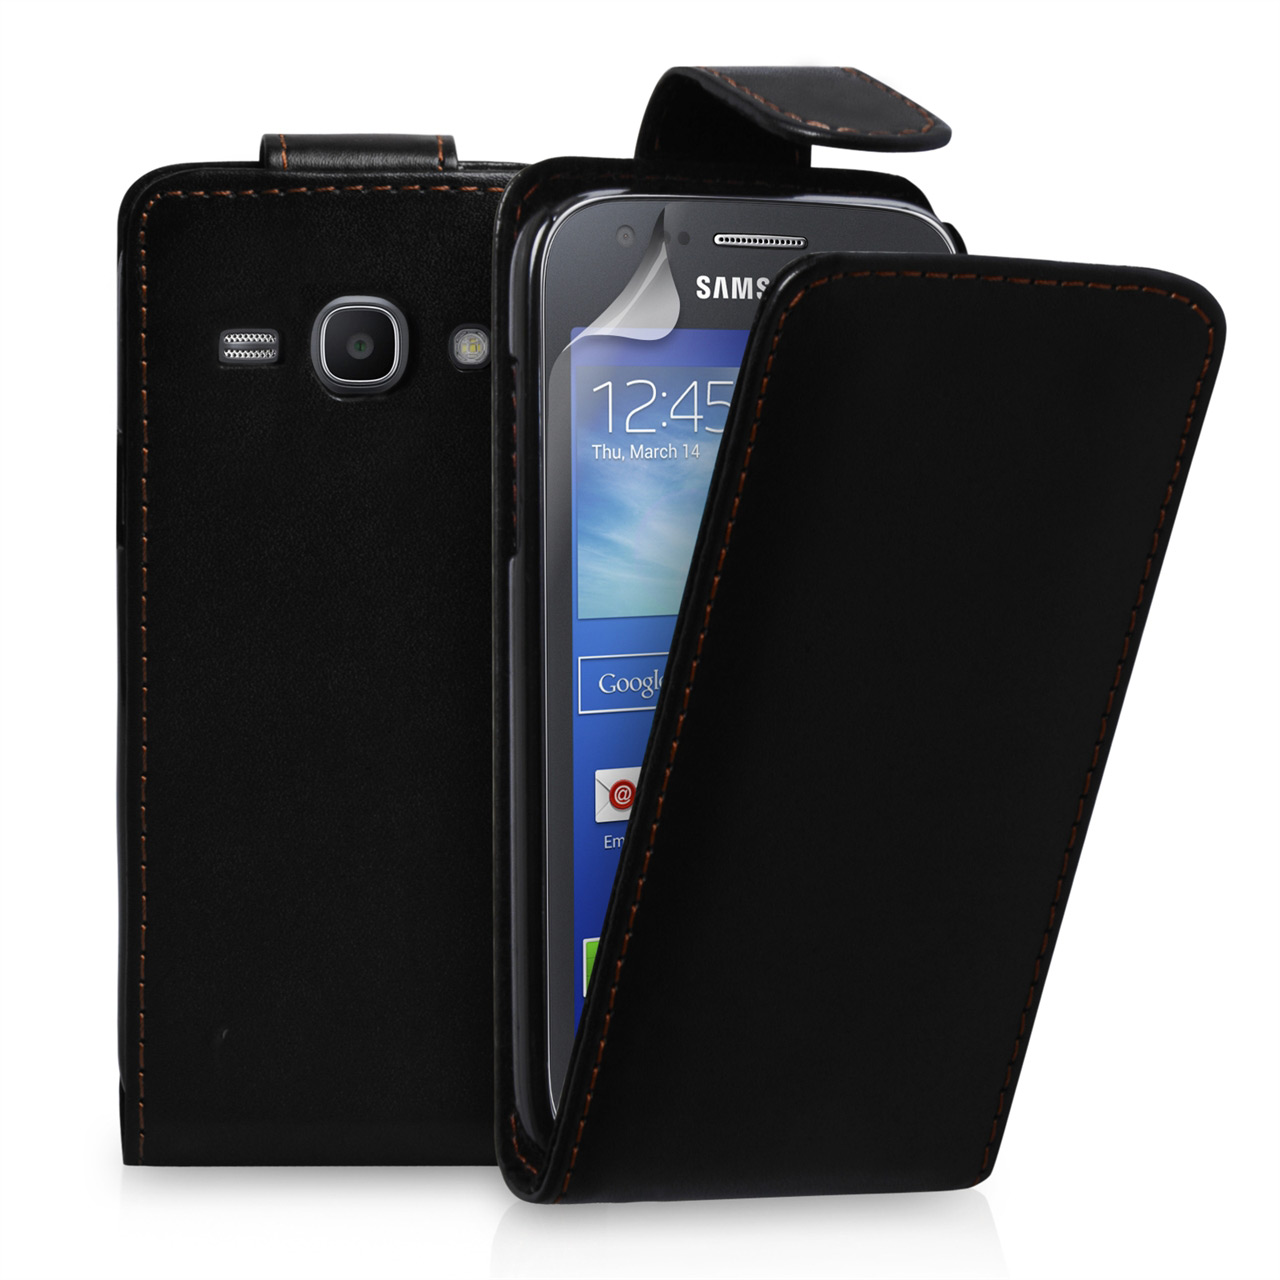 YouSave Samsung Galaxy Ace 3 Leather-Effect Flip Case - Black